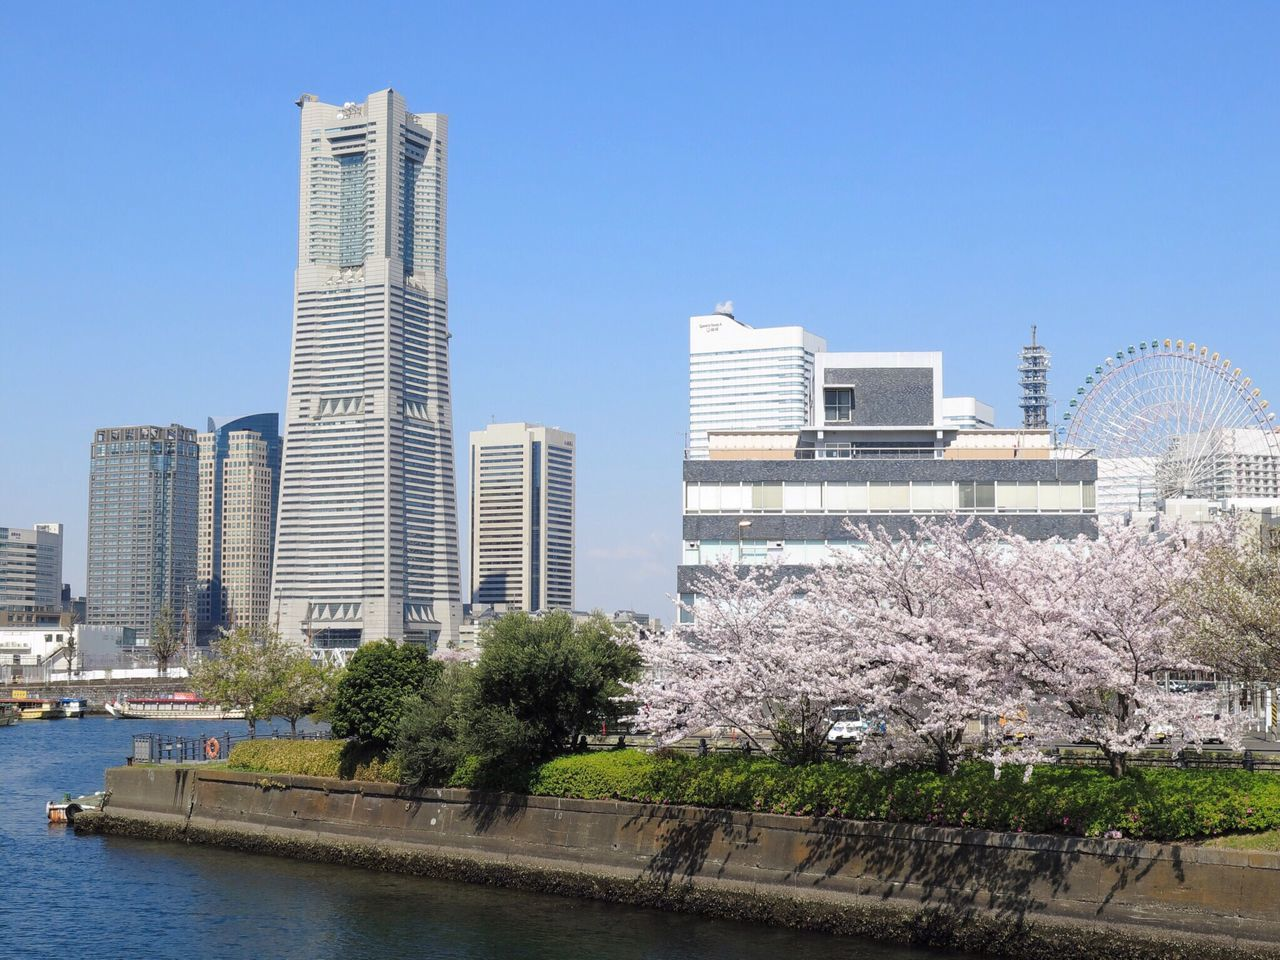 Architecture Built Structure Building Exterior Buildings & Sky The Street Photographer 横浜ランドマークタワー ランドマークタワー Sakura Cherry Blossoms Clear Sky PowerShot G16 Canon in Yokohama-shi , Japan